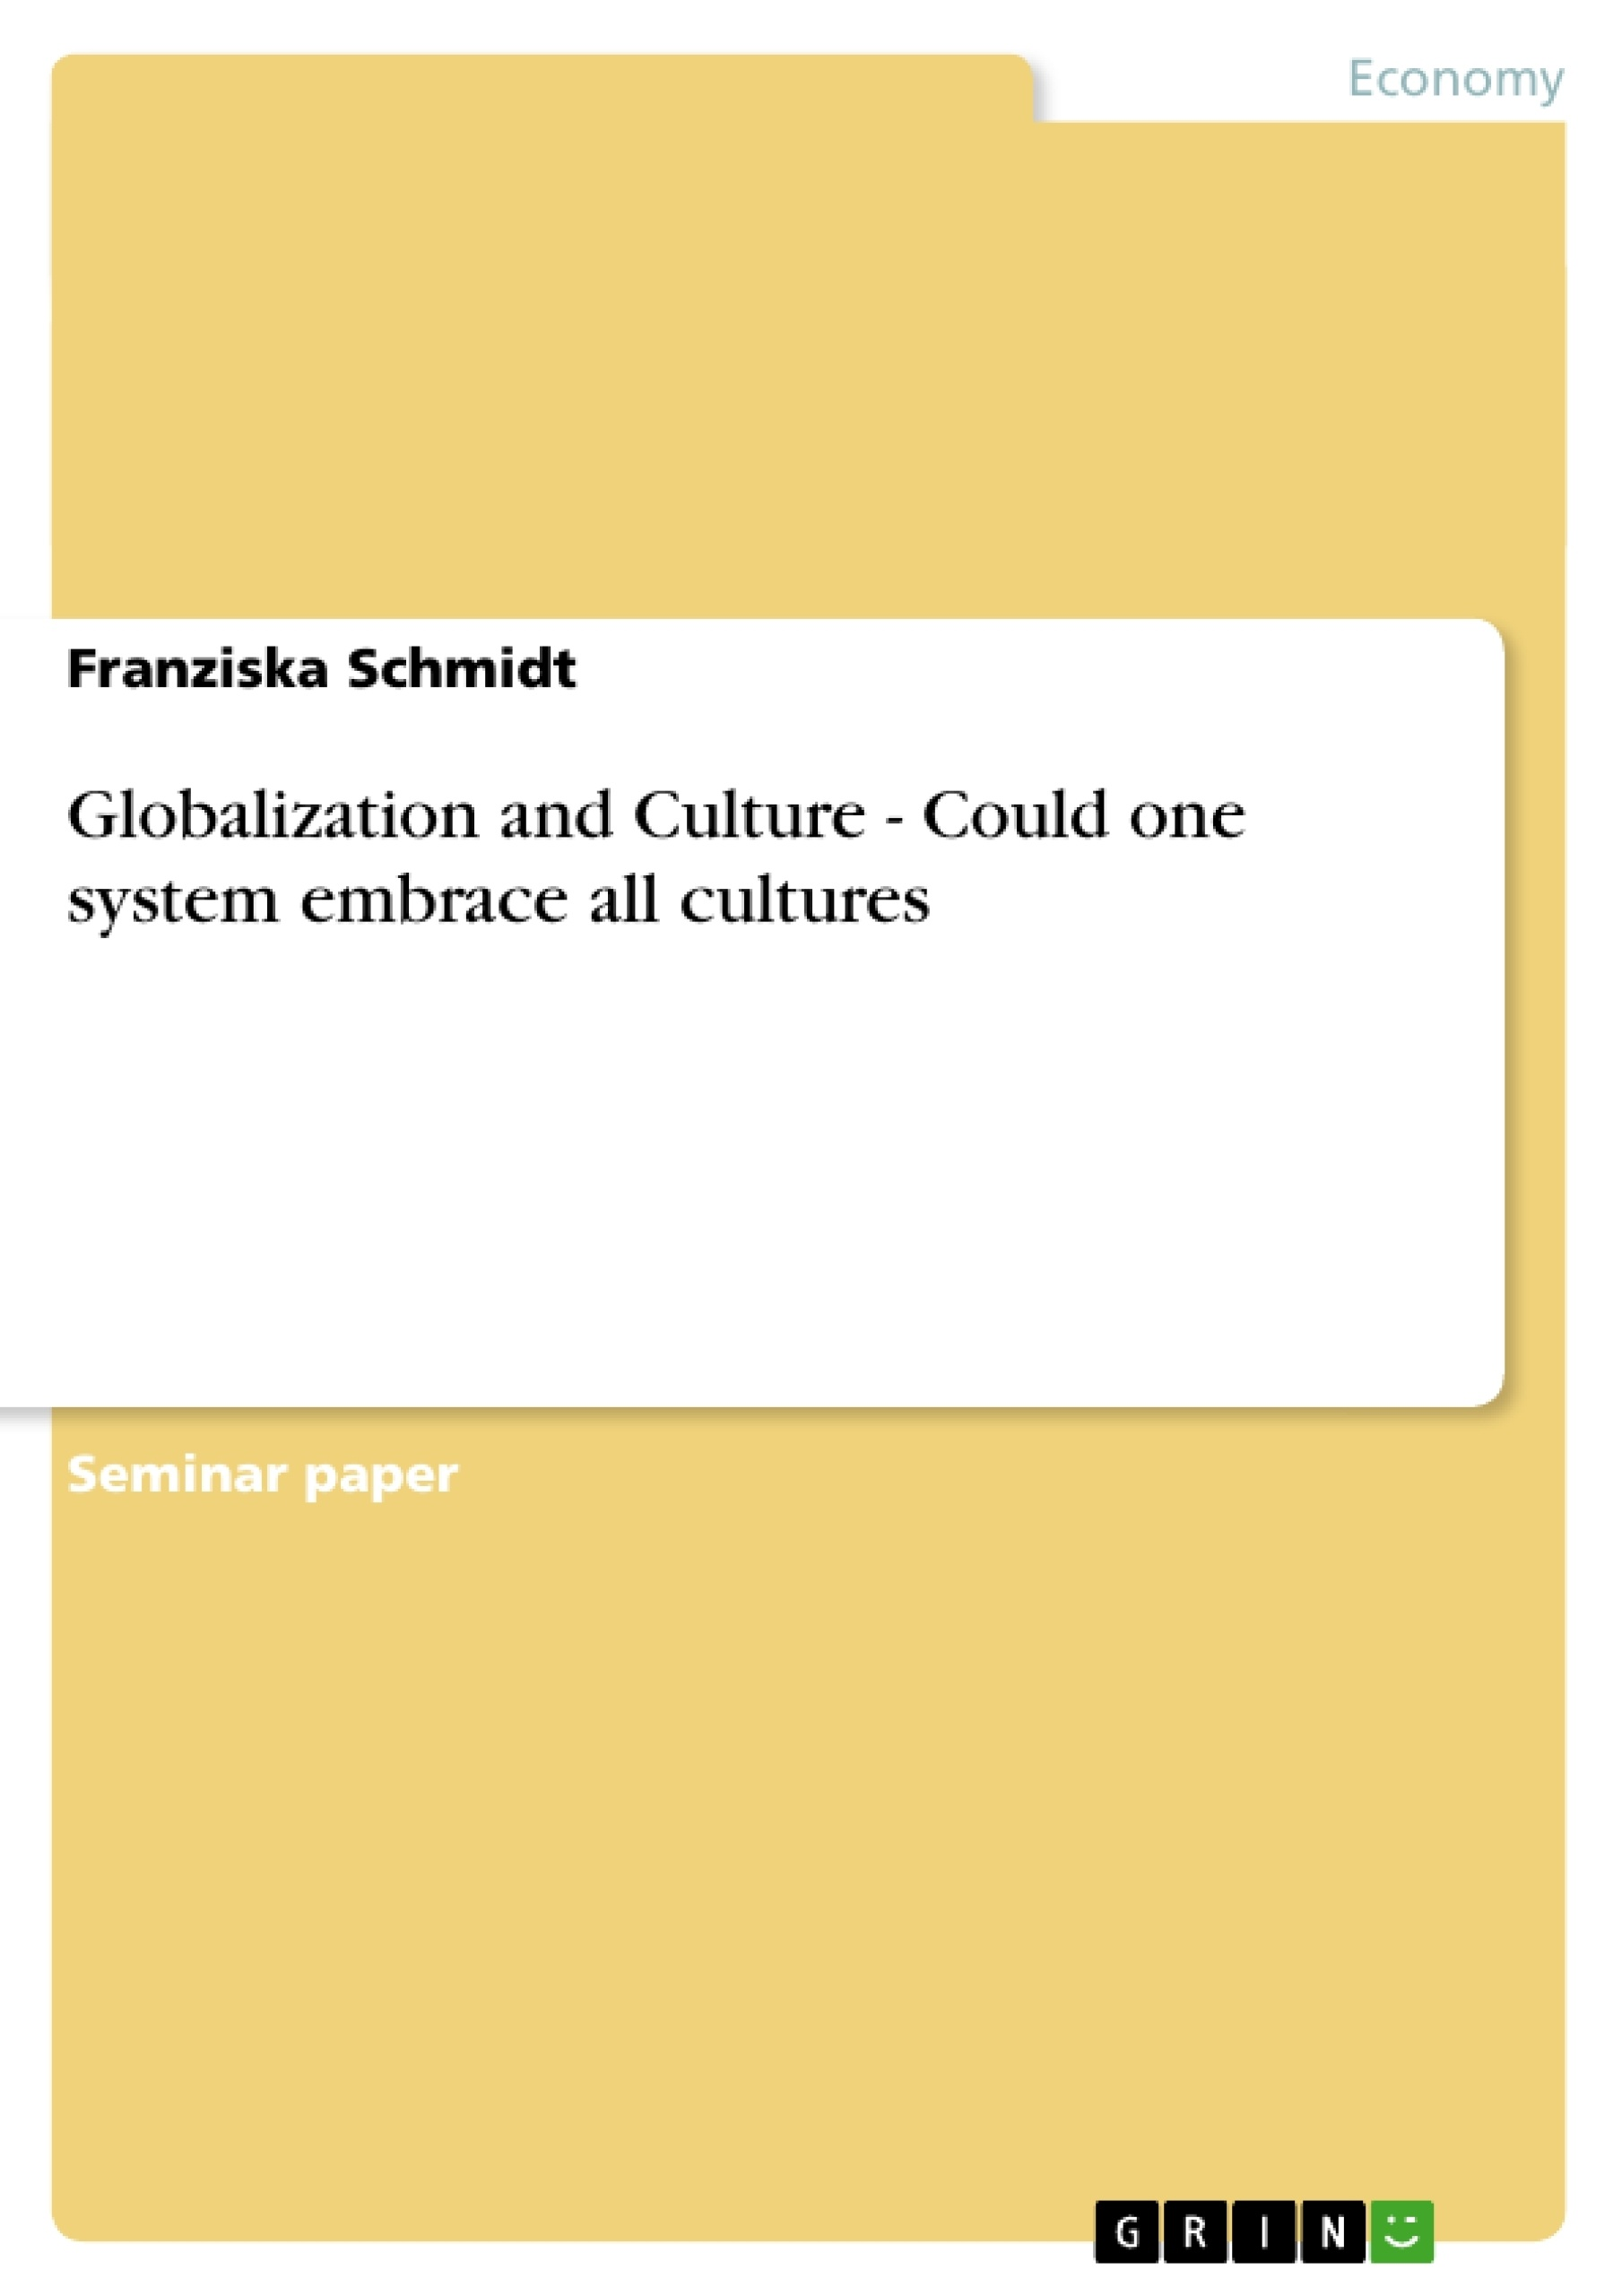 Title: Globalization and Culture - Could one system embrace all cultures